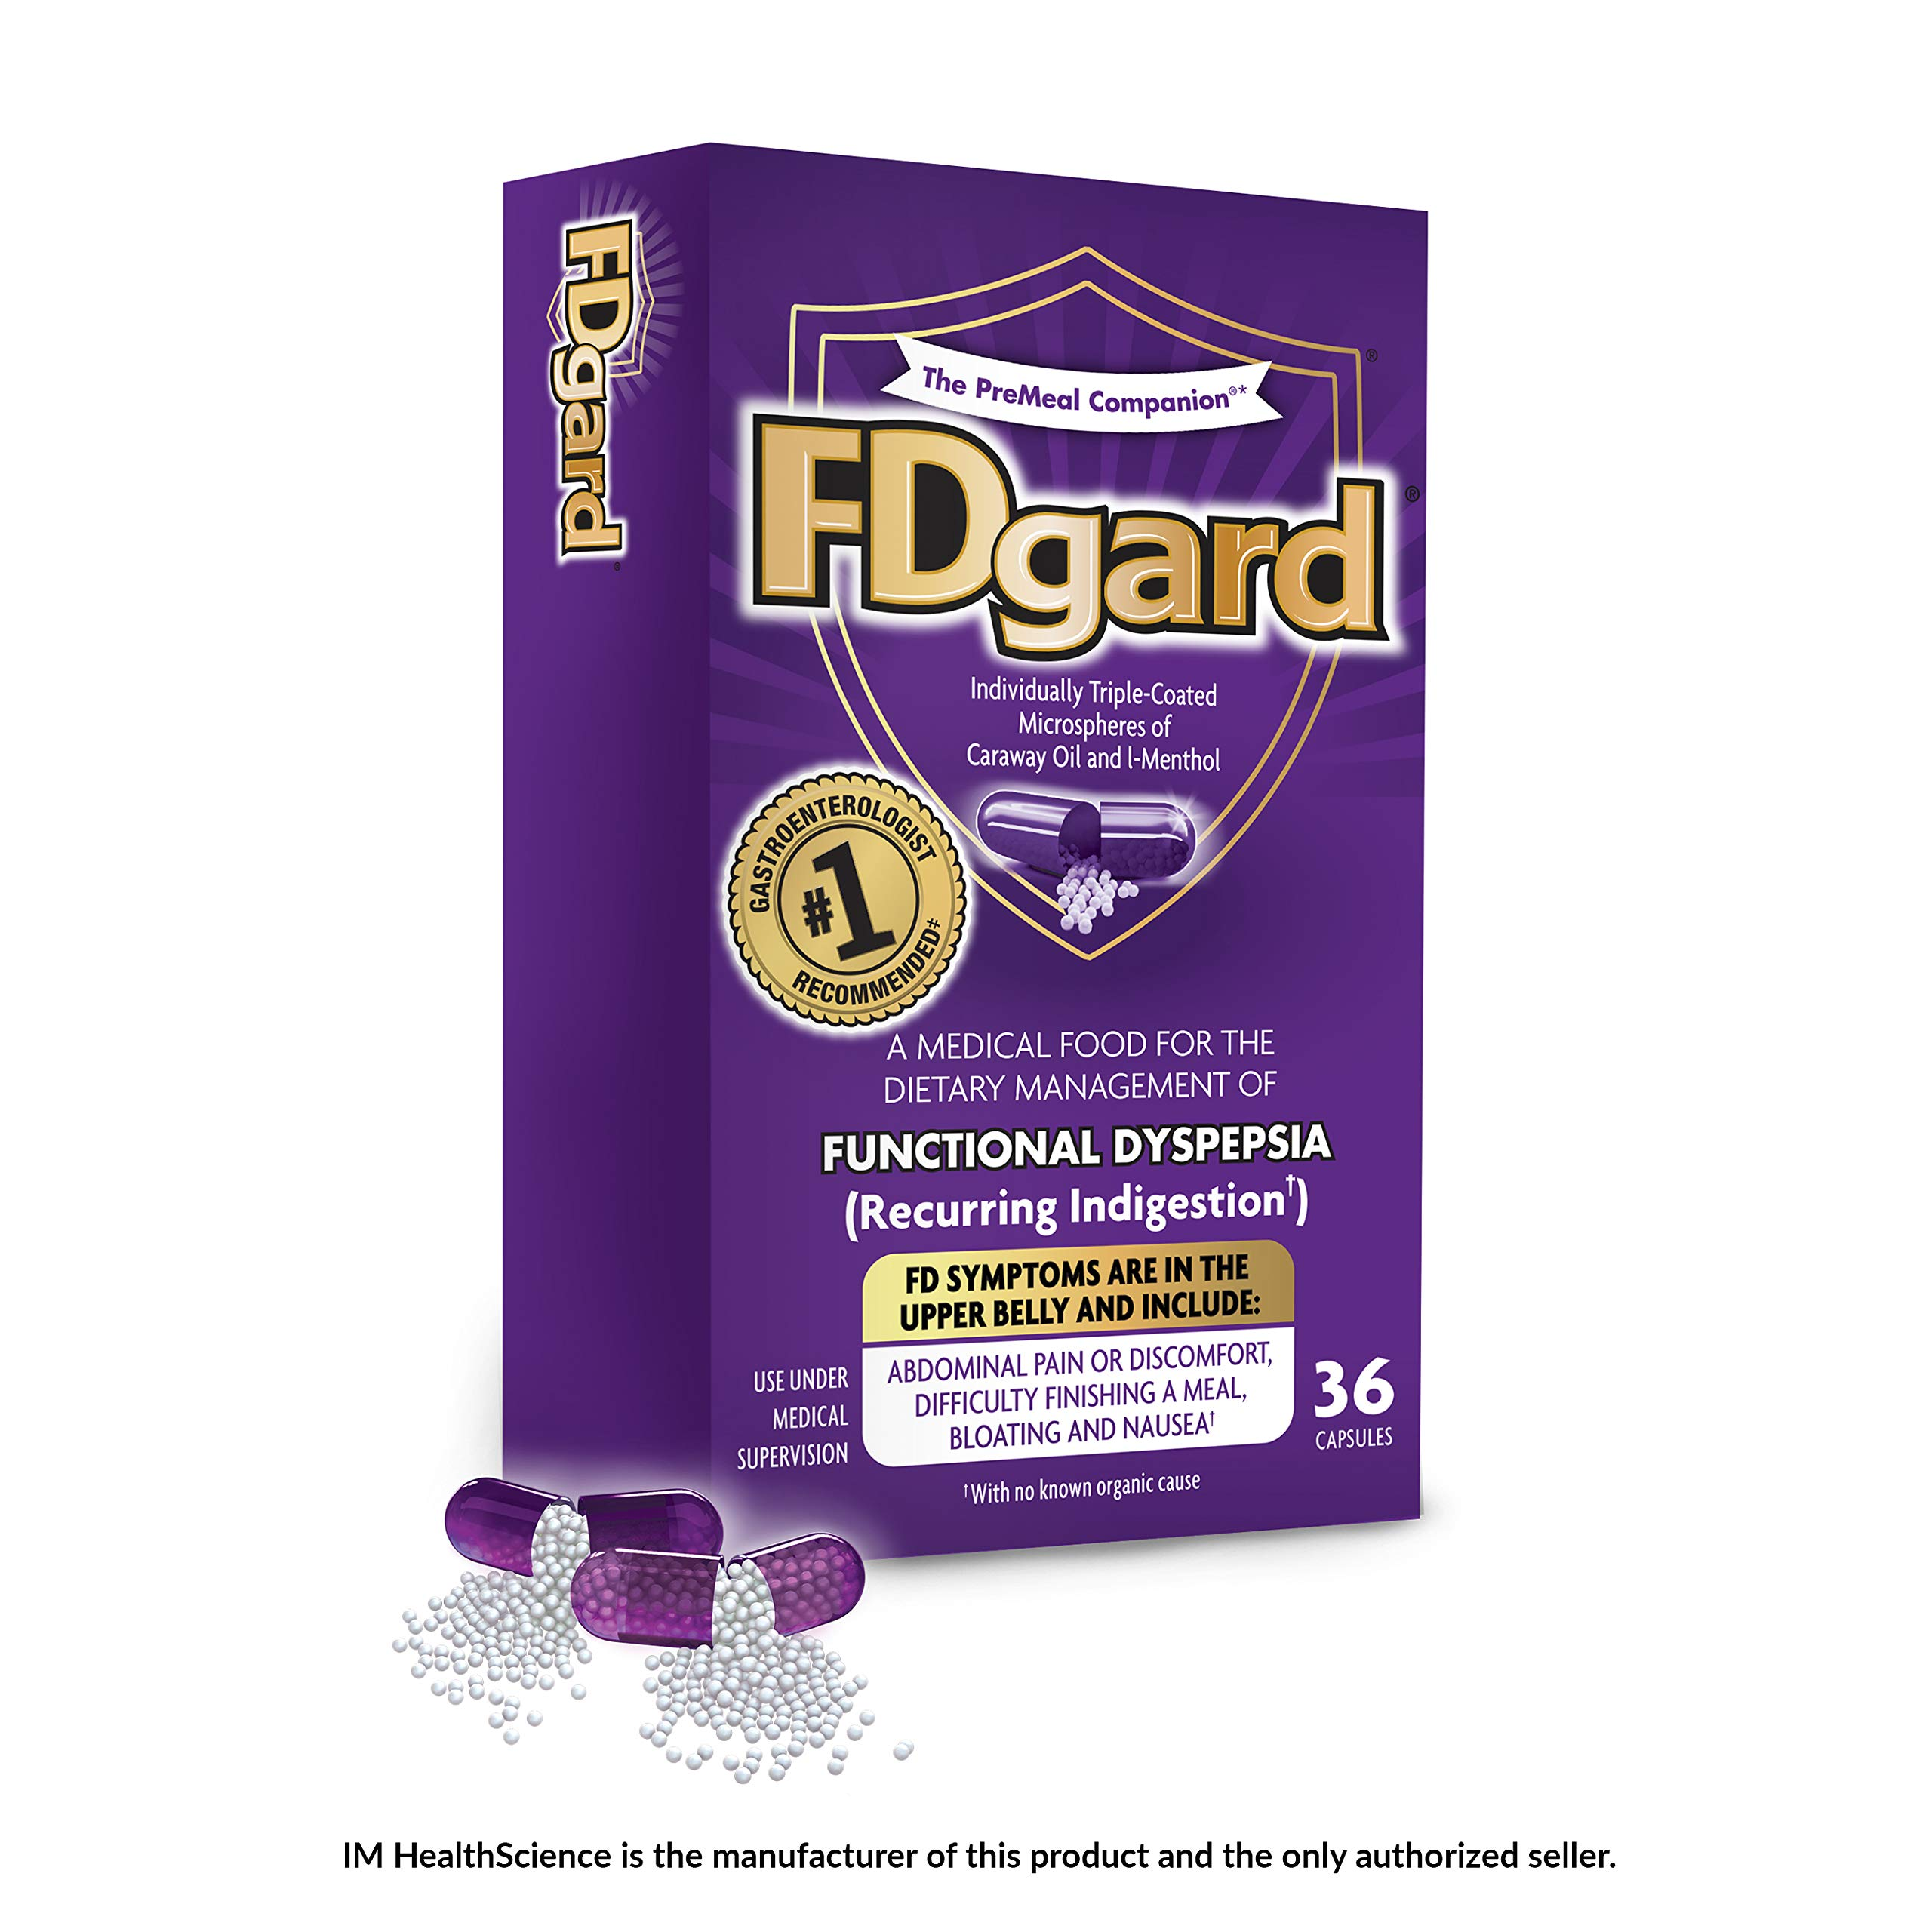 FDgard® for Functional Dyspepsia (Recurring Indigestion) Symptoms Including, Abdominal Pain & Discomfort, Nausea, Bloating, Difficulty Finishing a Meal, 36 Capsules by FDgard